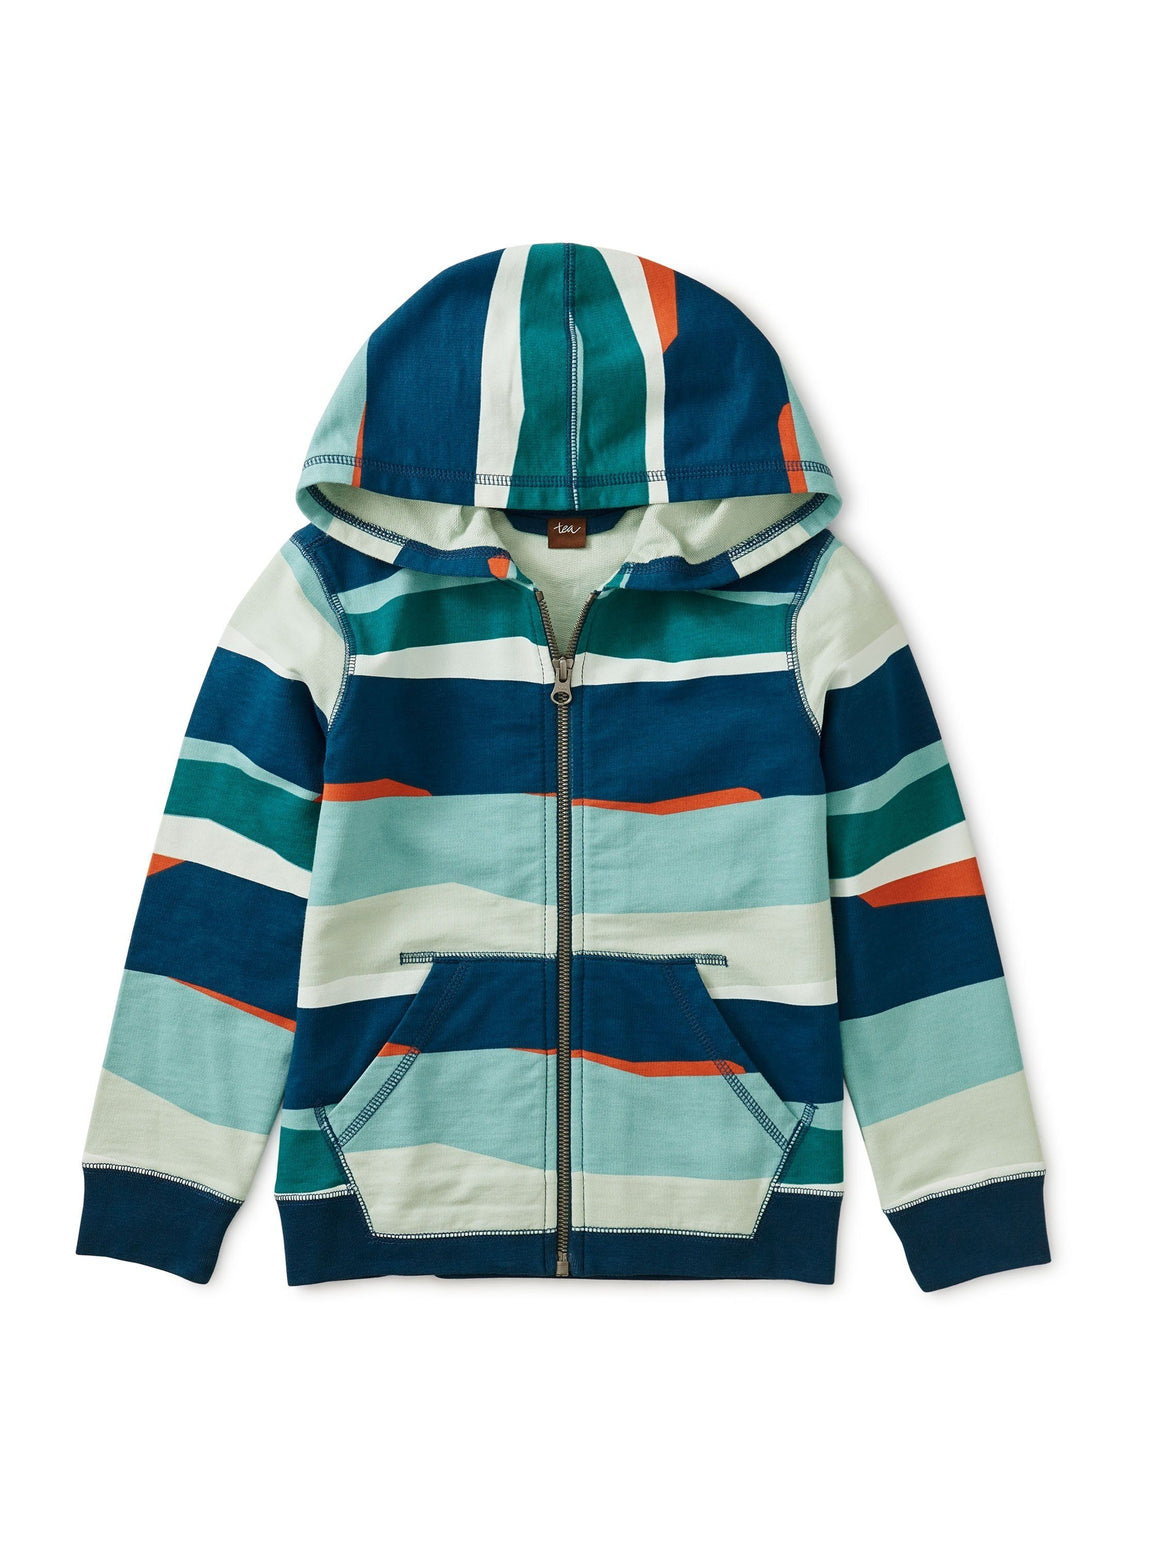 9W22131-Z41 Tea Collection Ocean Waves Printed Zip Hooded Sweatshirt Sweatshirt Tea Collection